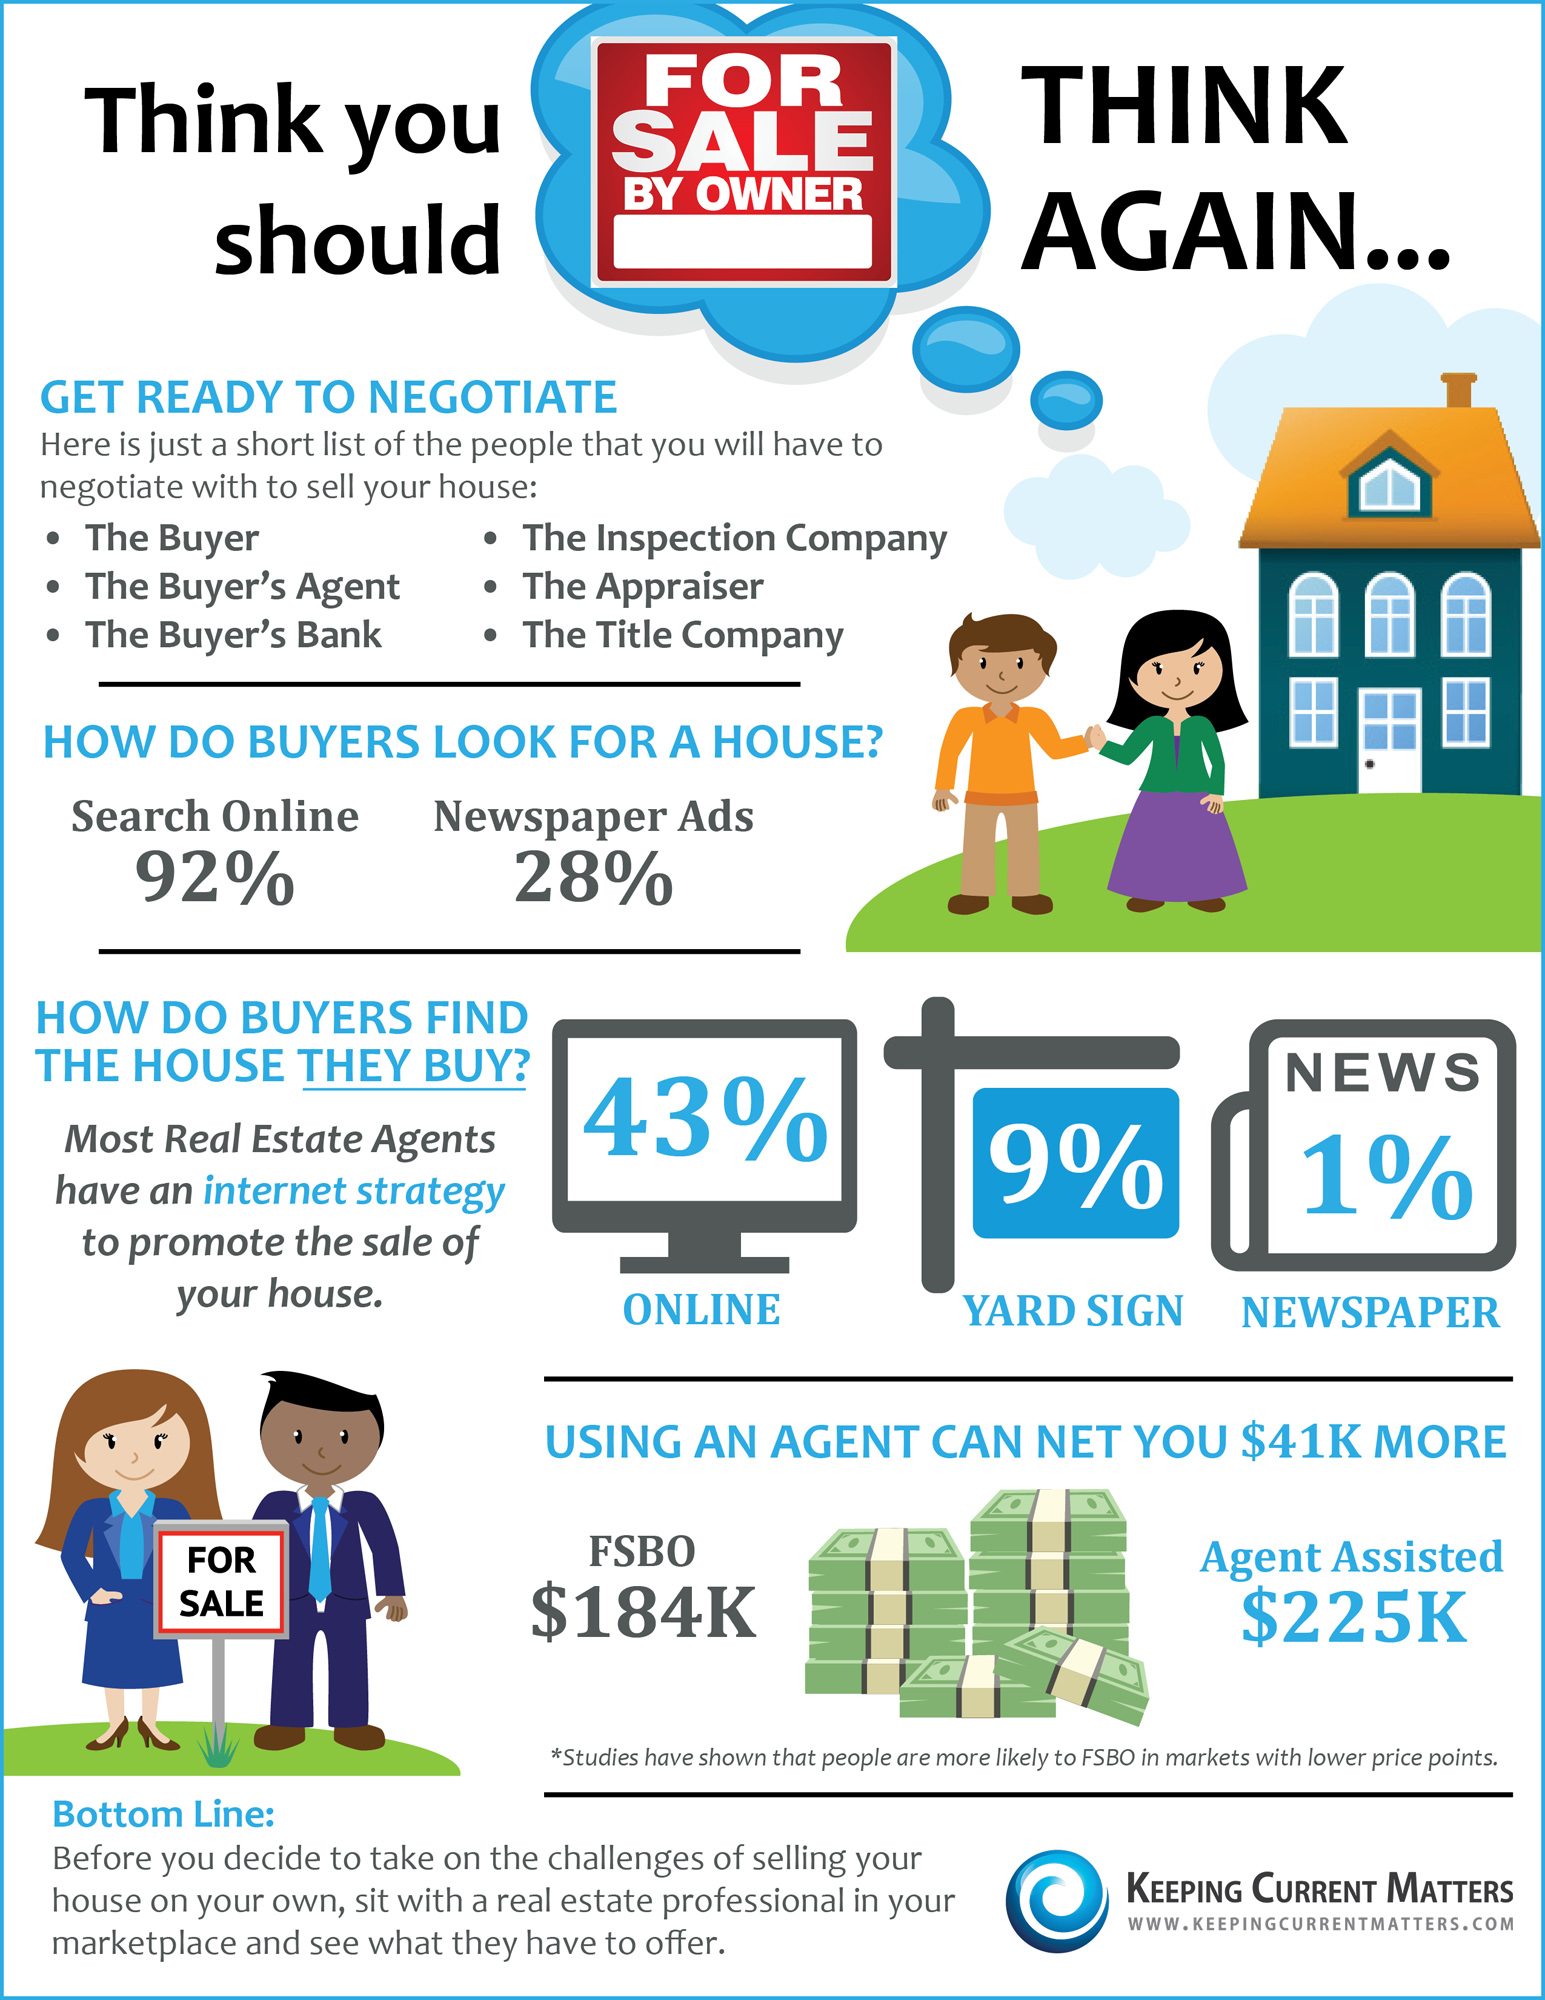 https://i2.wp.com/www.keepingcurrentmatters.com/wp-content/uploads/2014/04/FSBO.jpg